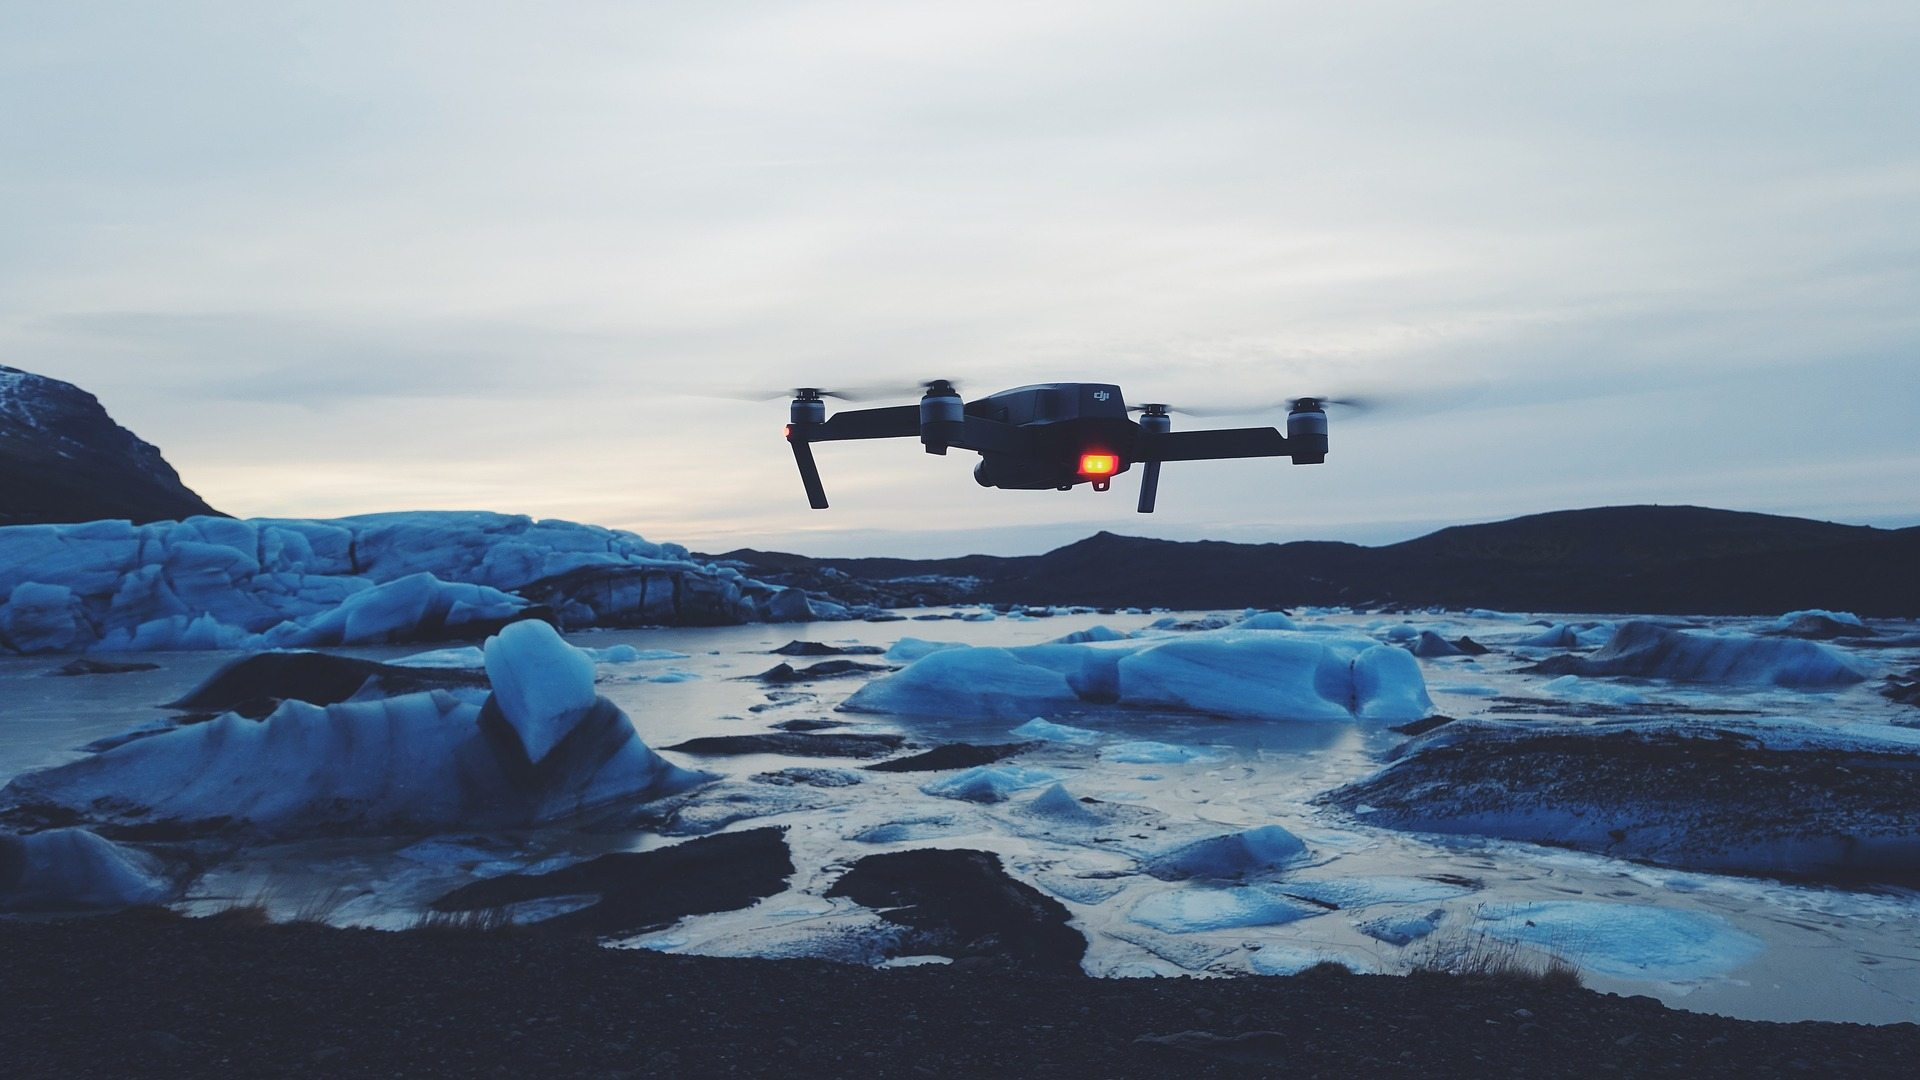 Image: Drone above an icy body of water